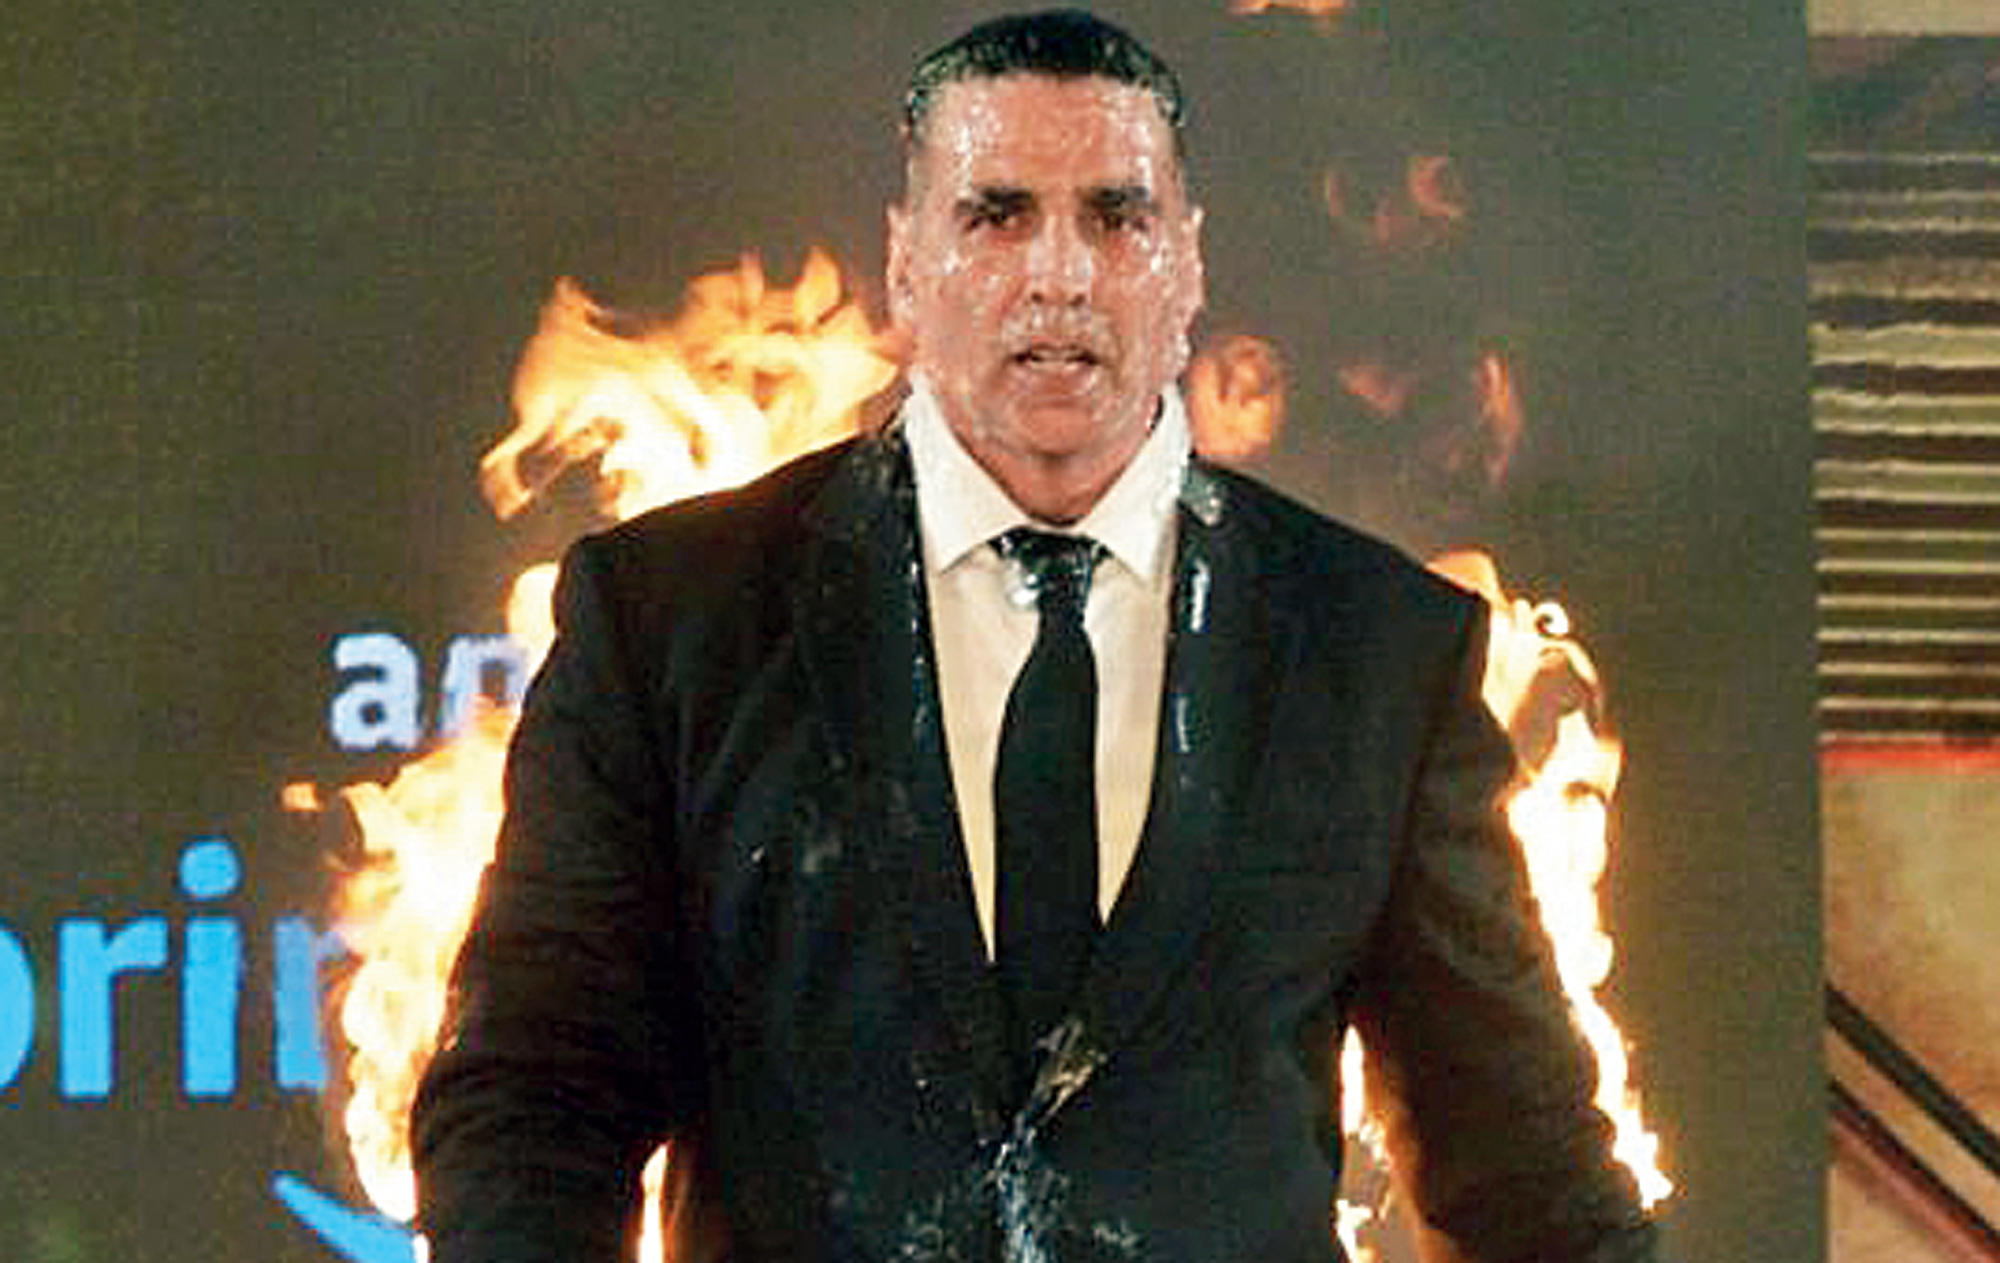 After films, Abundantia Entertainment is now focusing on the digital space, including a show with Akshay Kumar